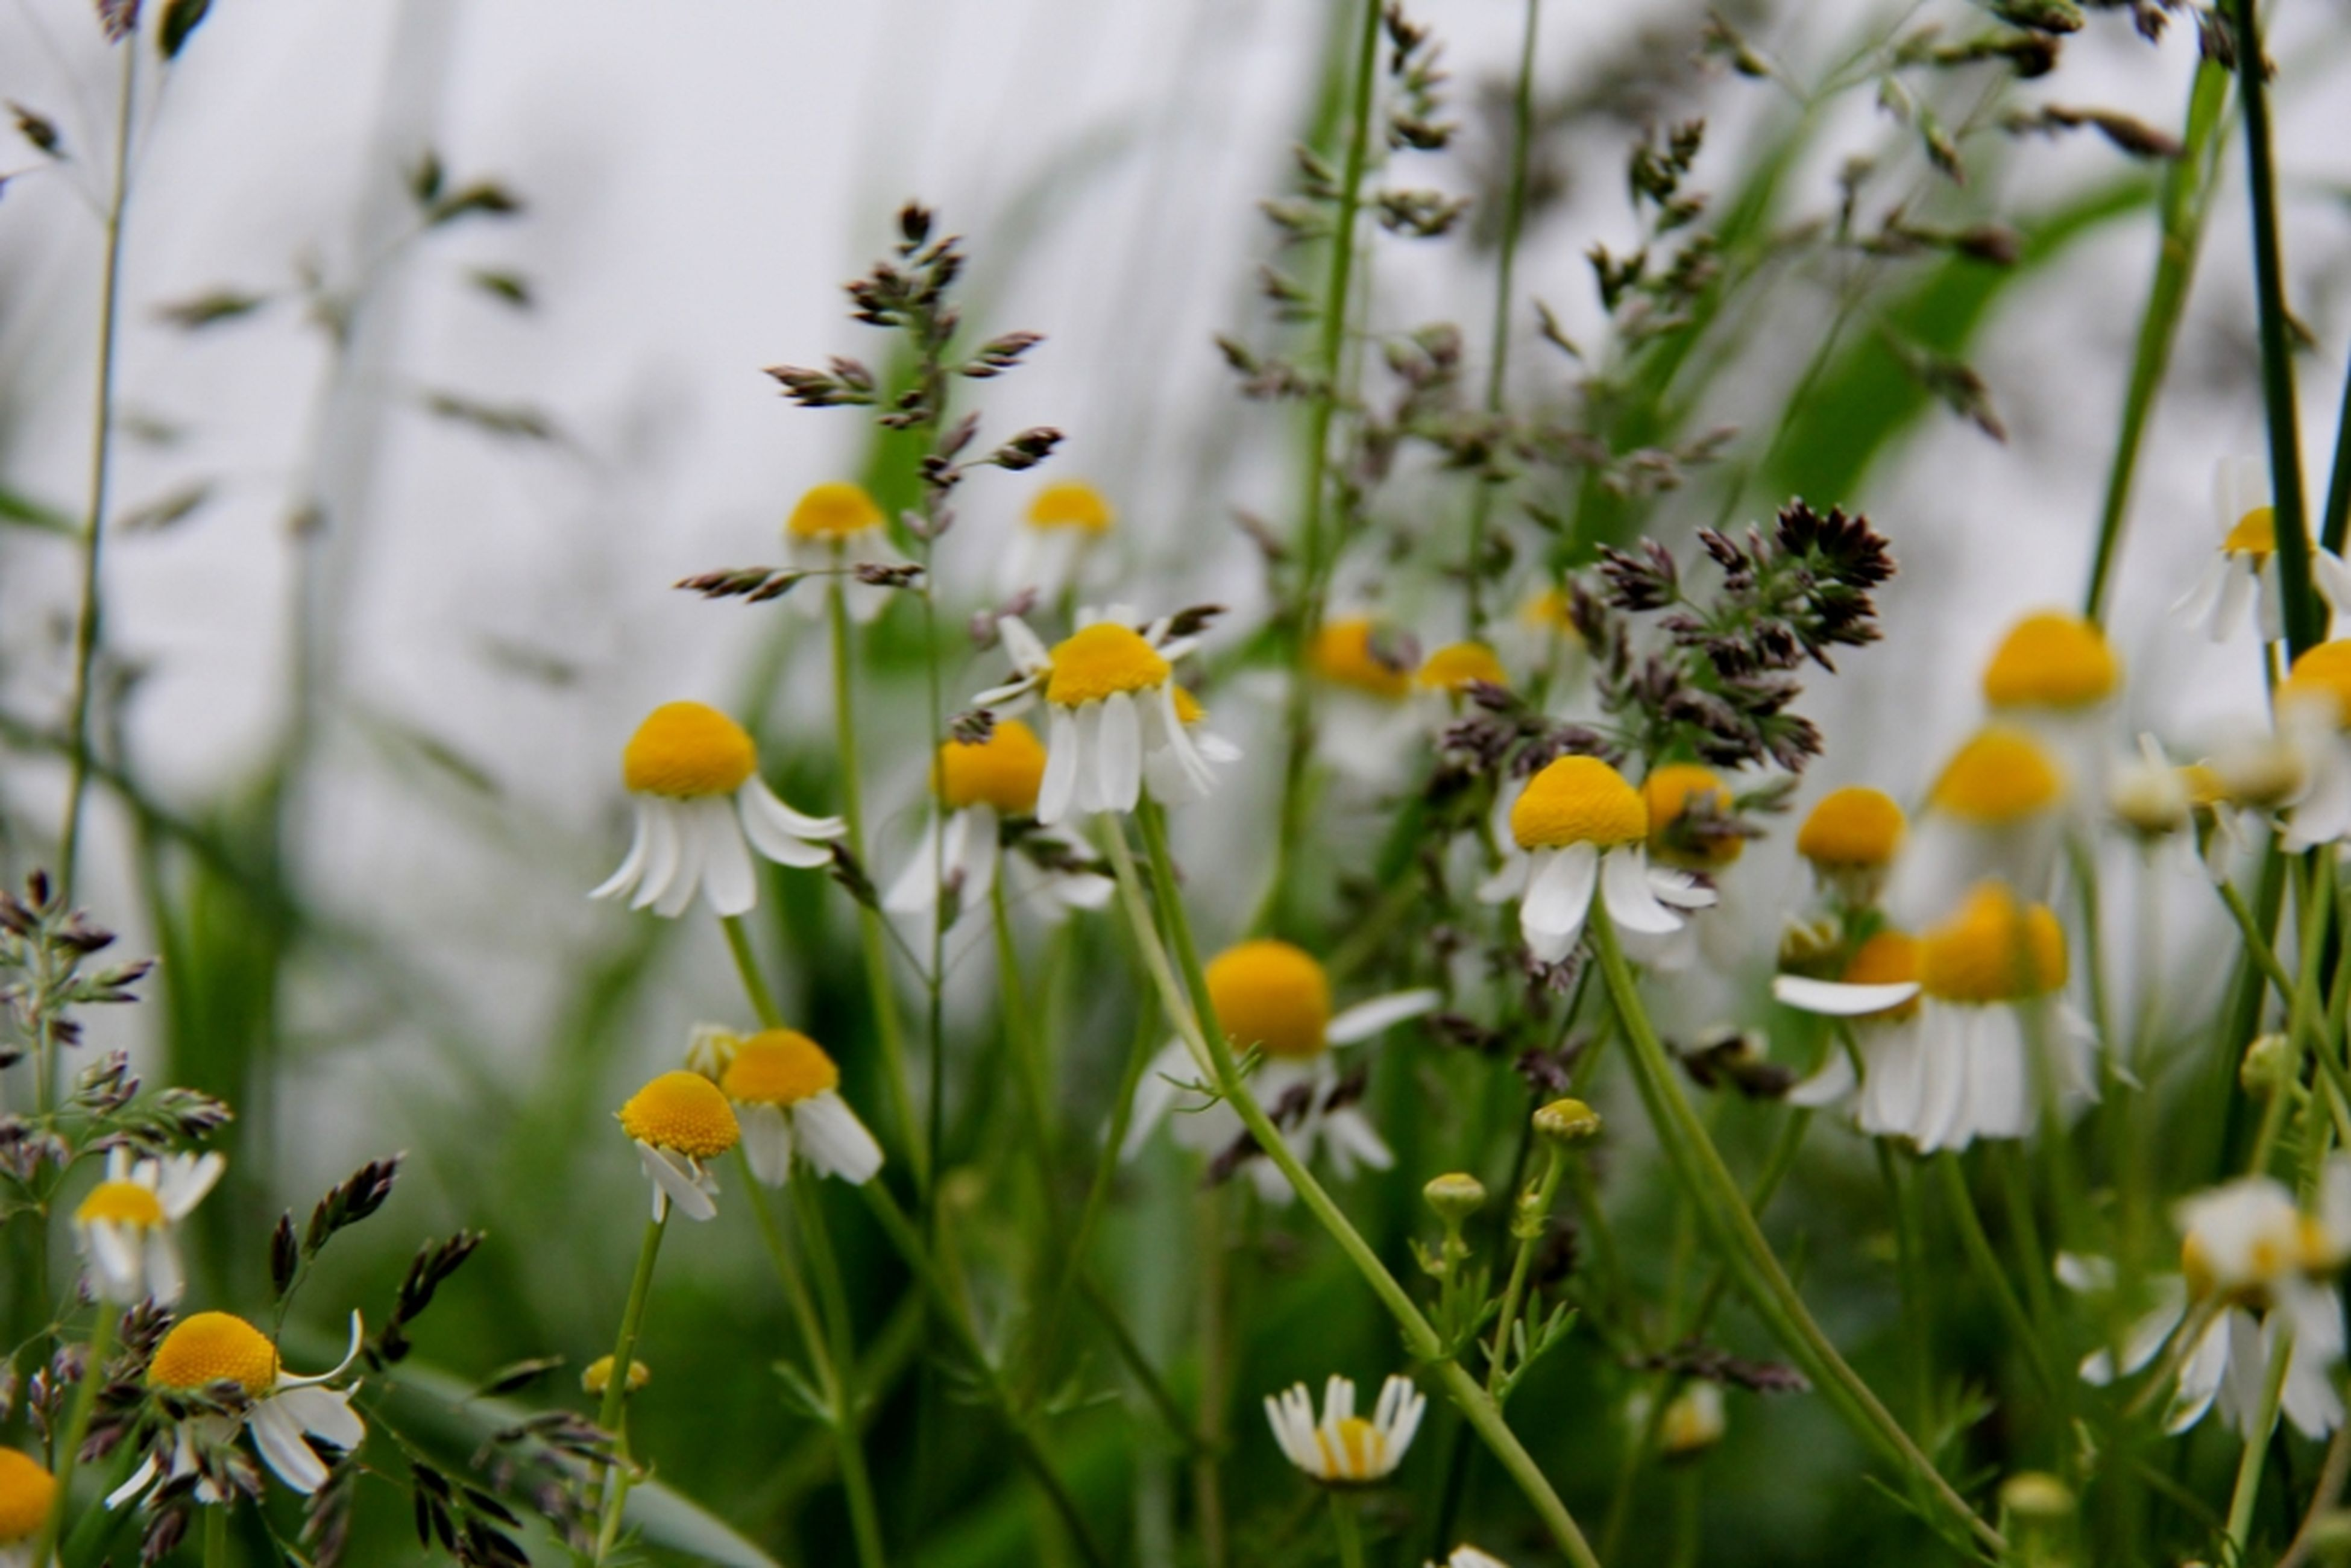 flower, freshness, yellow, growth, fragility, petal, flower head, beauty in nature, plant, blooming, nature, focus on foreground, close-up, stem, selective focus, in bloom, field, day, outdoors, no people